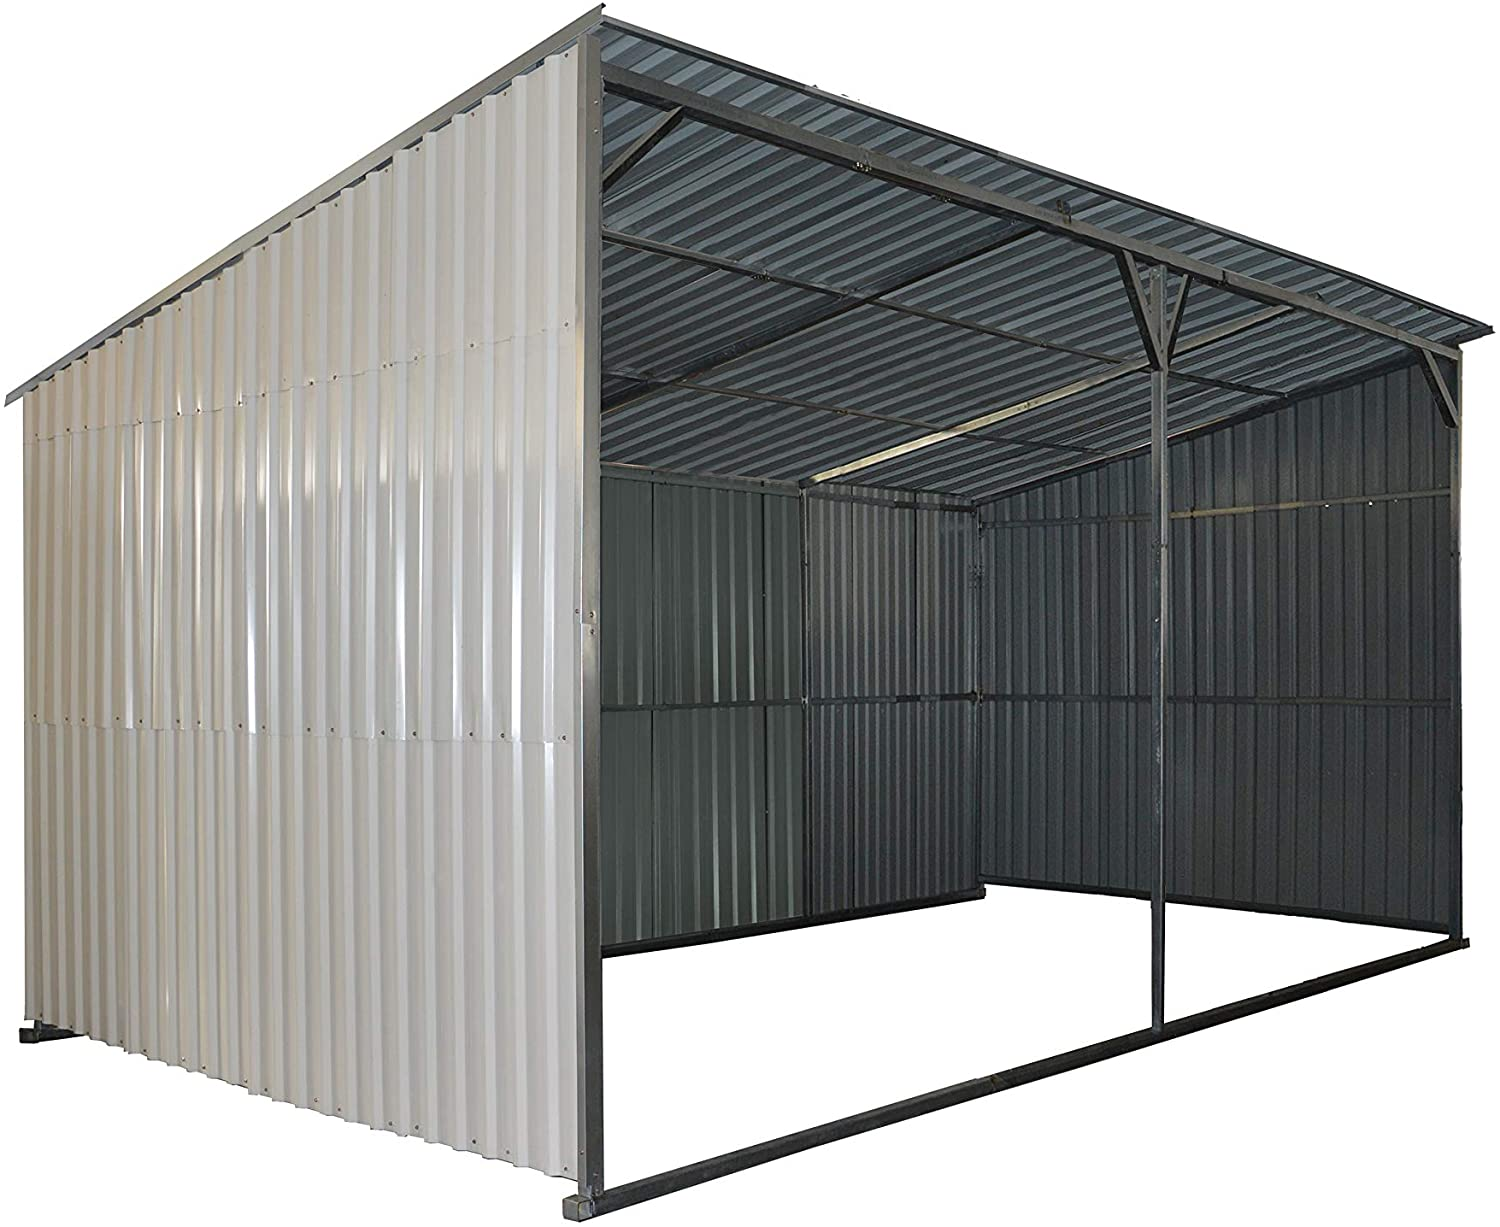 Industrial 12' x 20' All Metal Livestock Shed